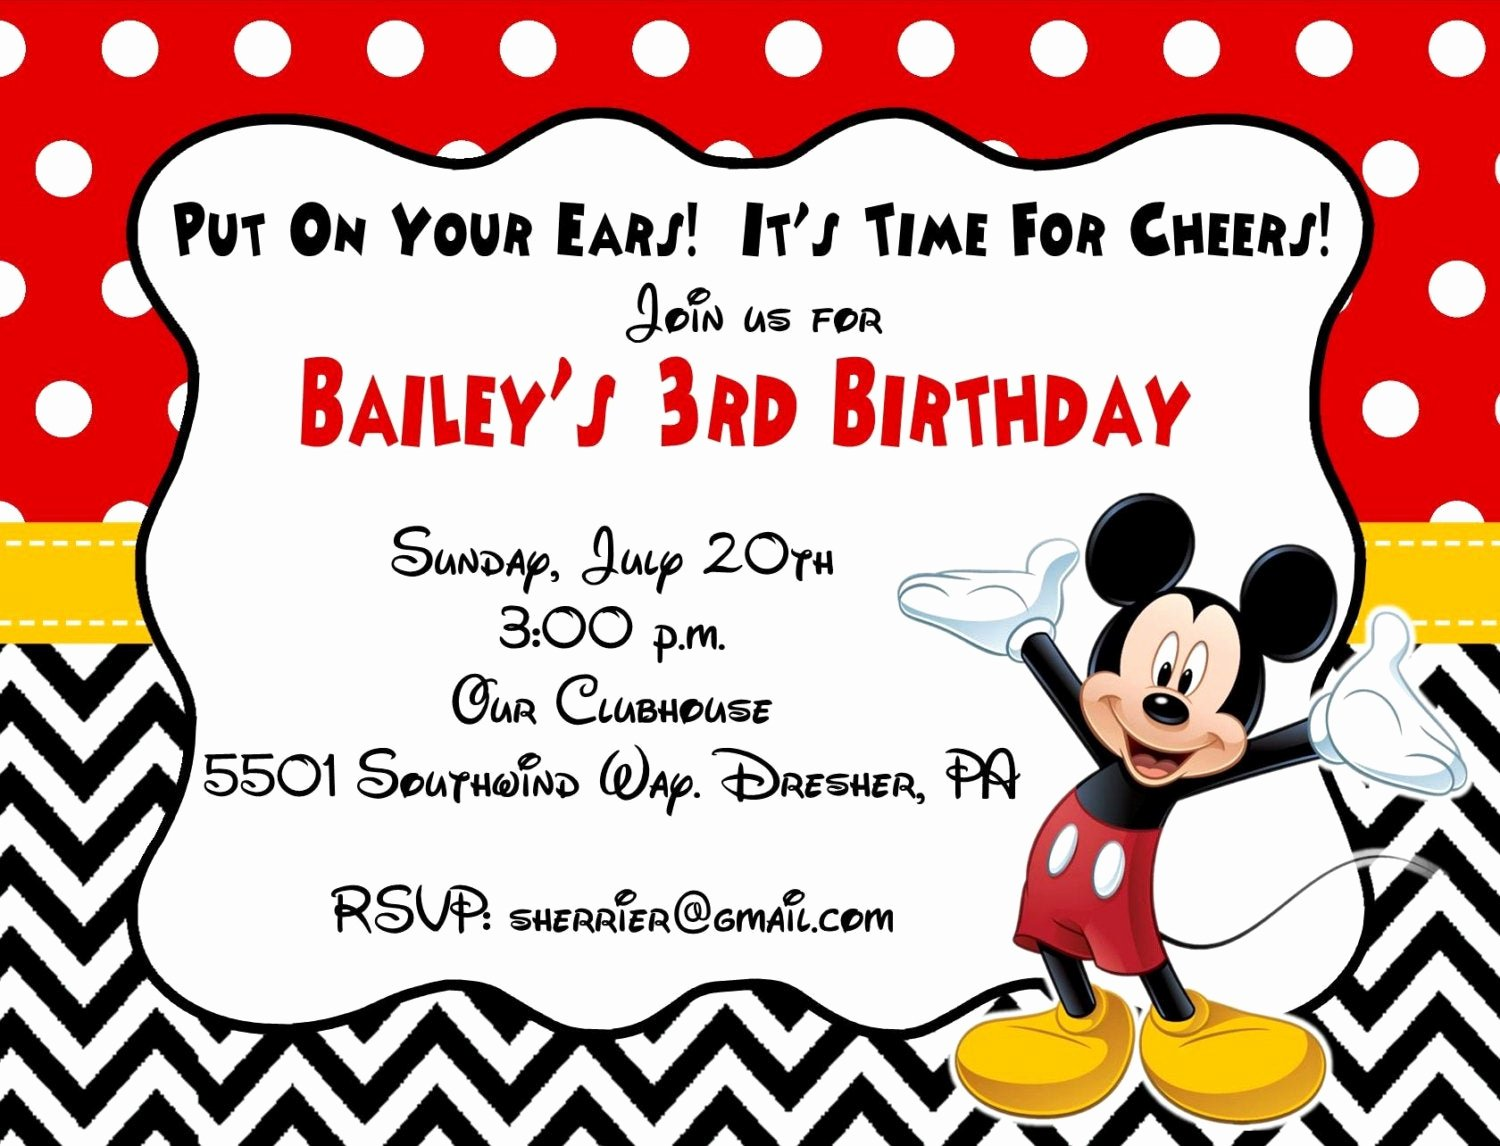 Mickey Mouse Picture Invitations Beautiful 10 Printed Mickey Mouse Invitations with Envelopes Free